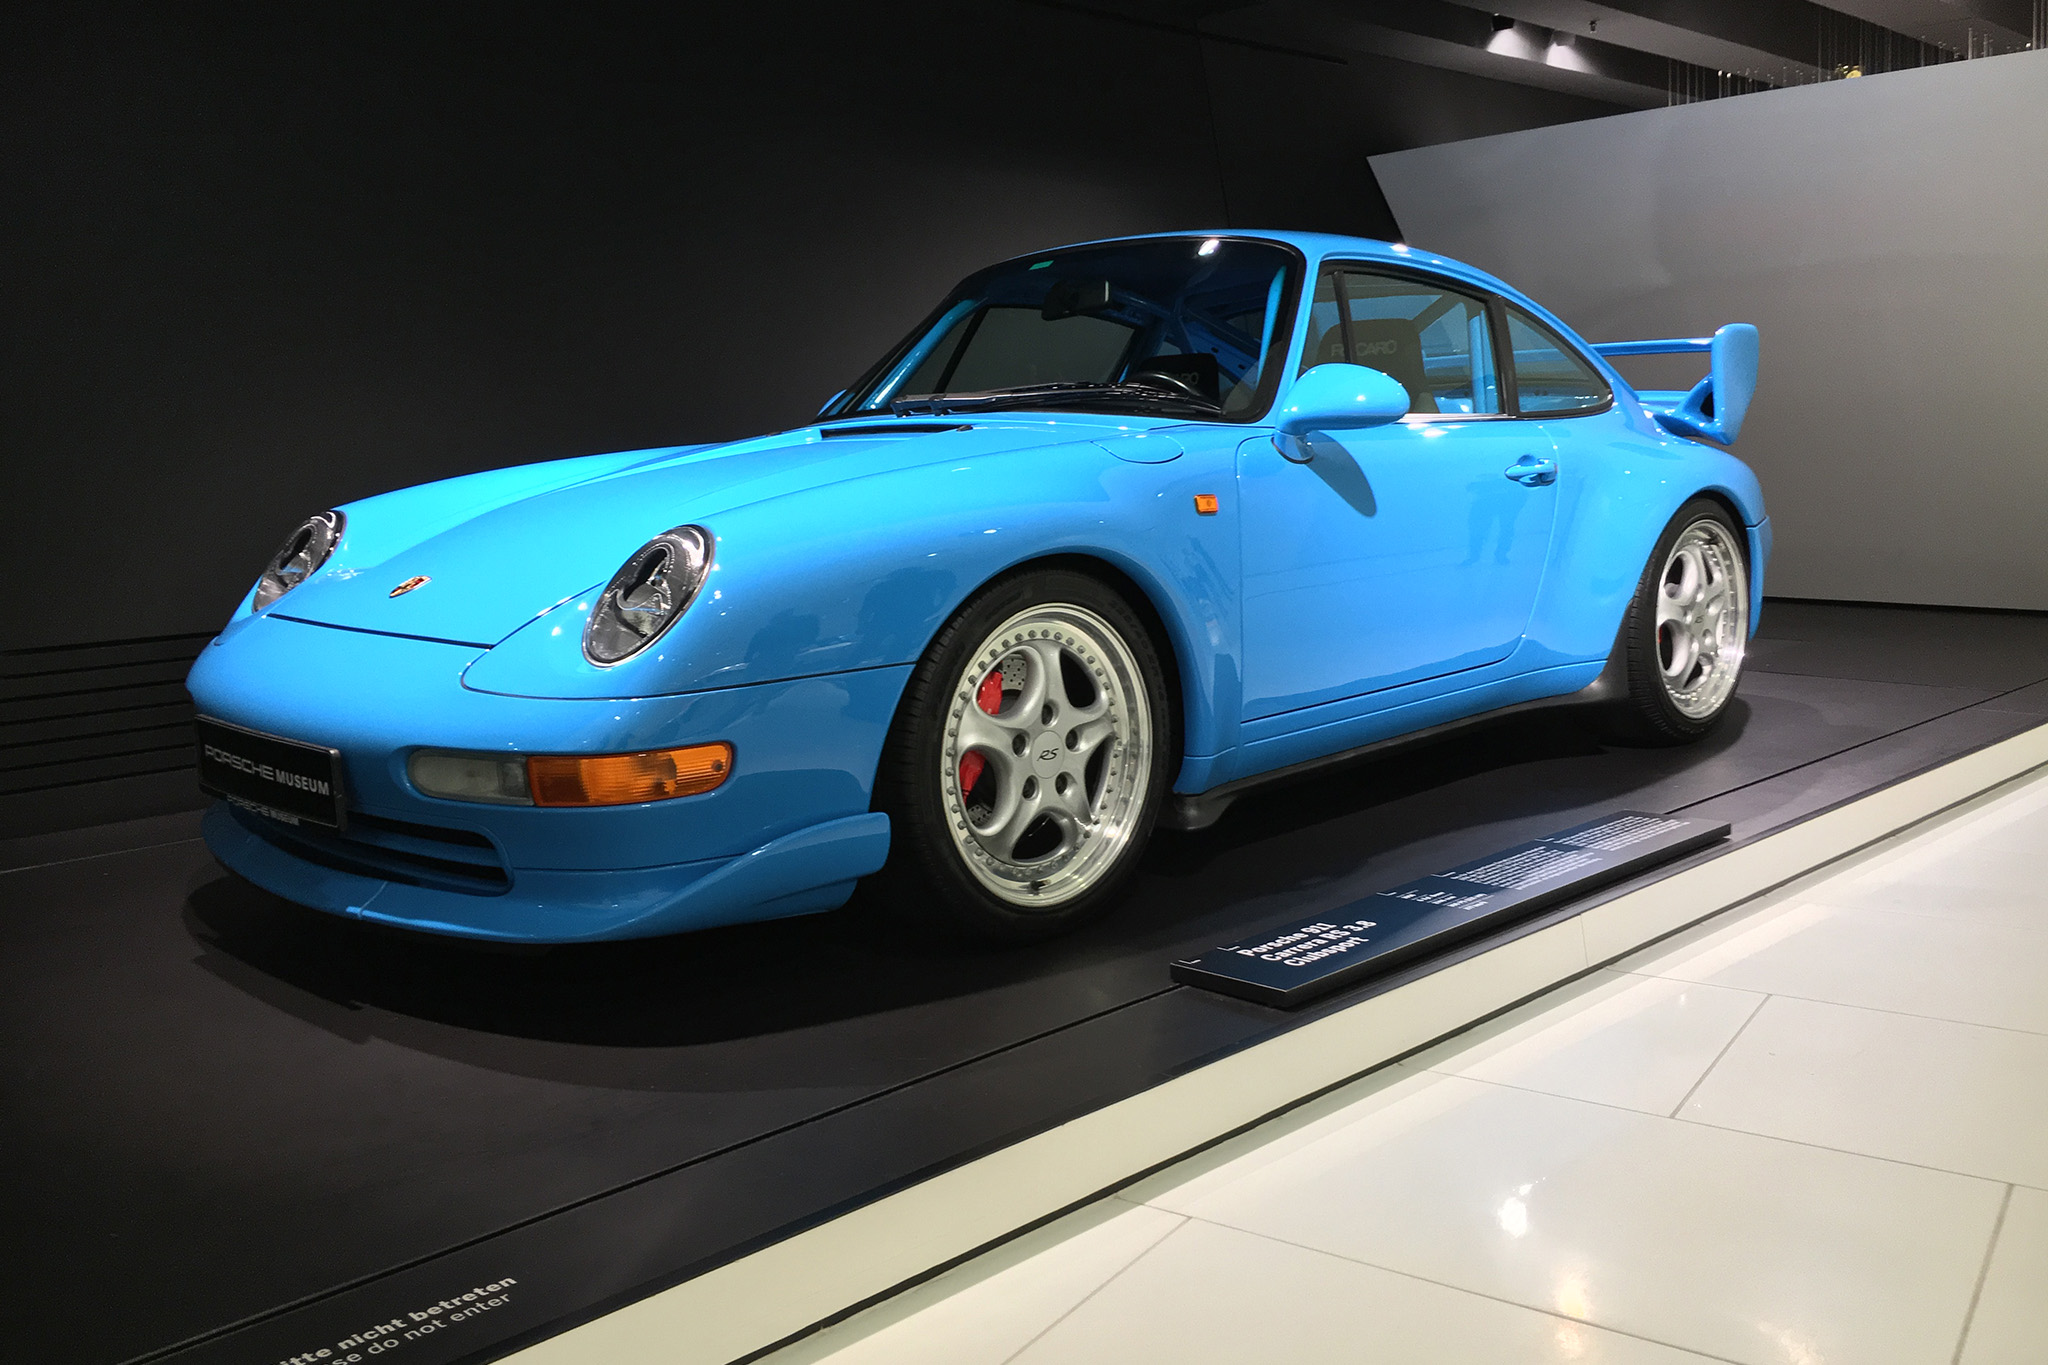 fabulous porsche 911 gt1 blue coral noisiestpassenger. Black Bedroom Furniture Sets. Home Design Ideas